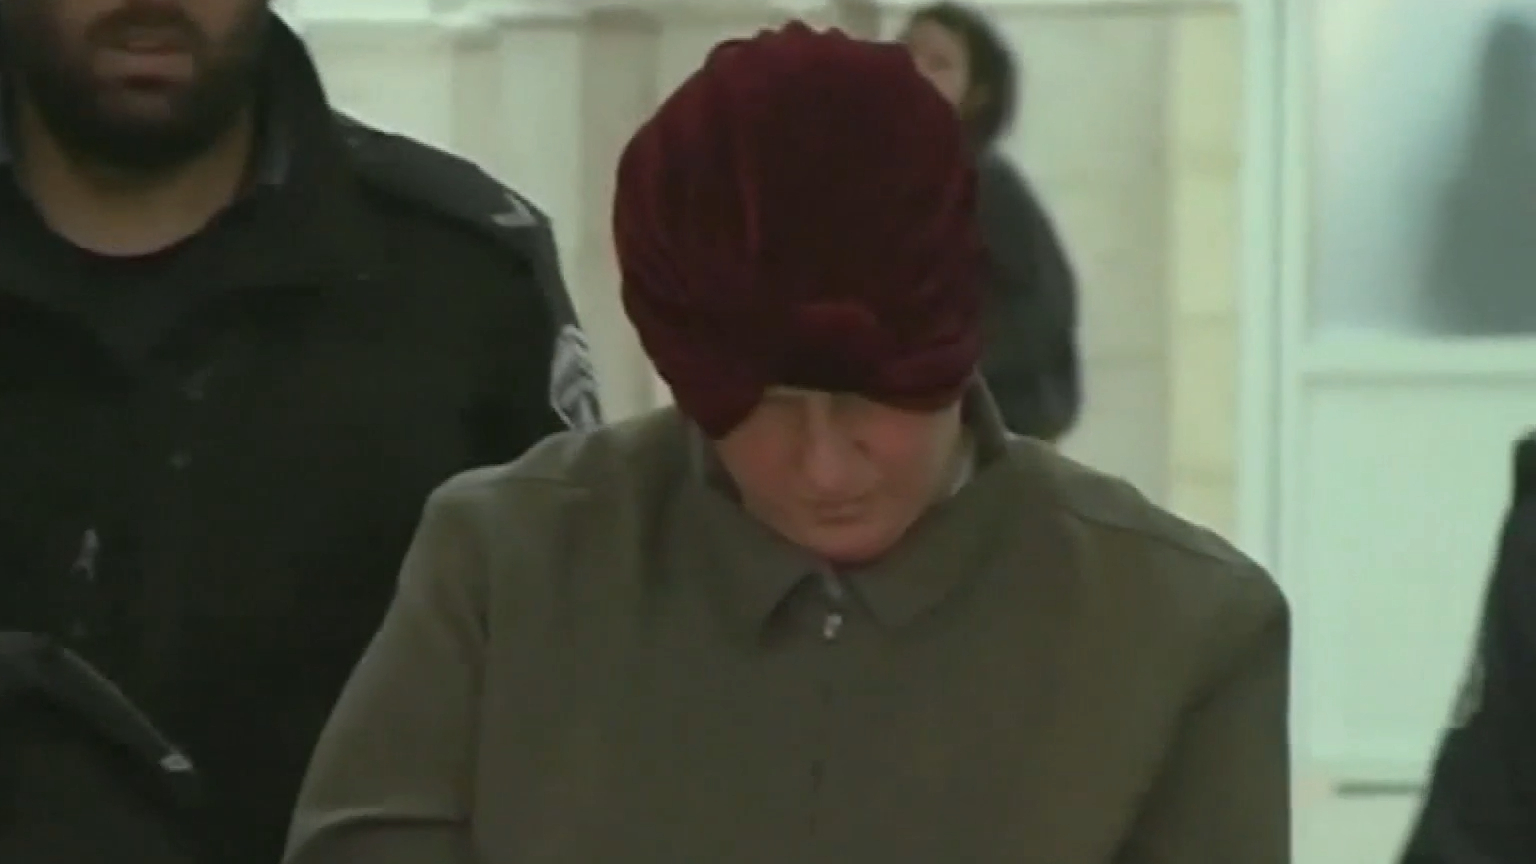 Malka Leifer returning to Melbourne, could face court this week